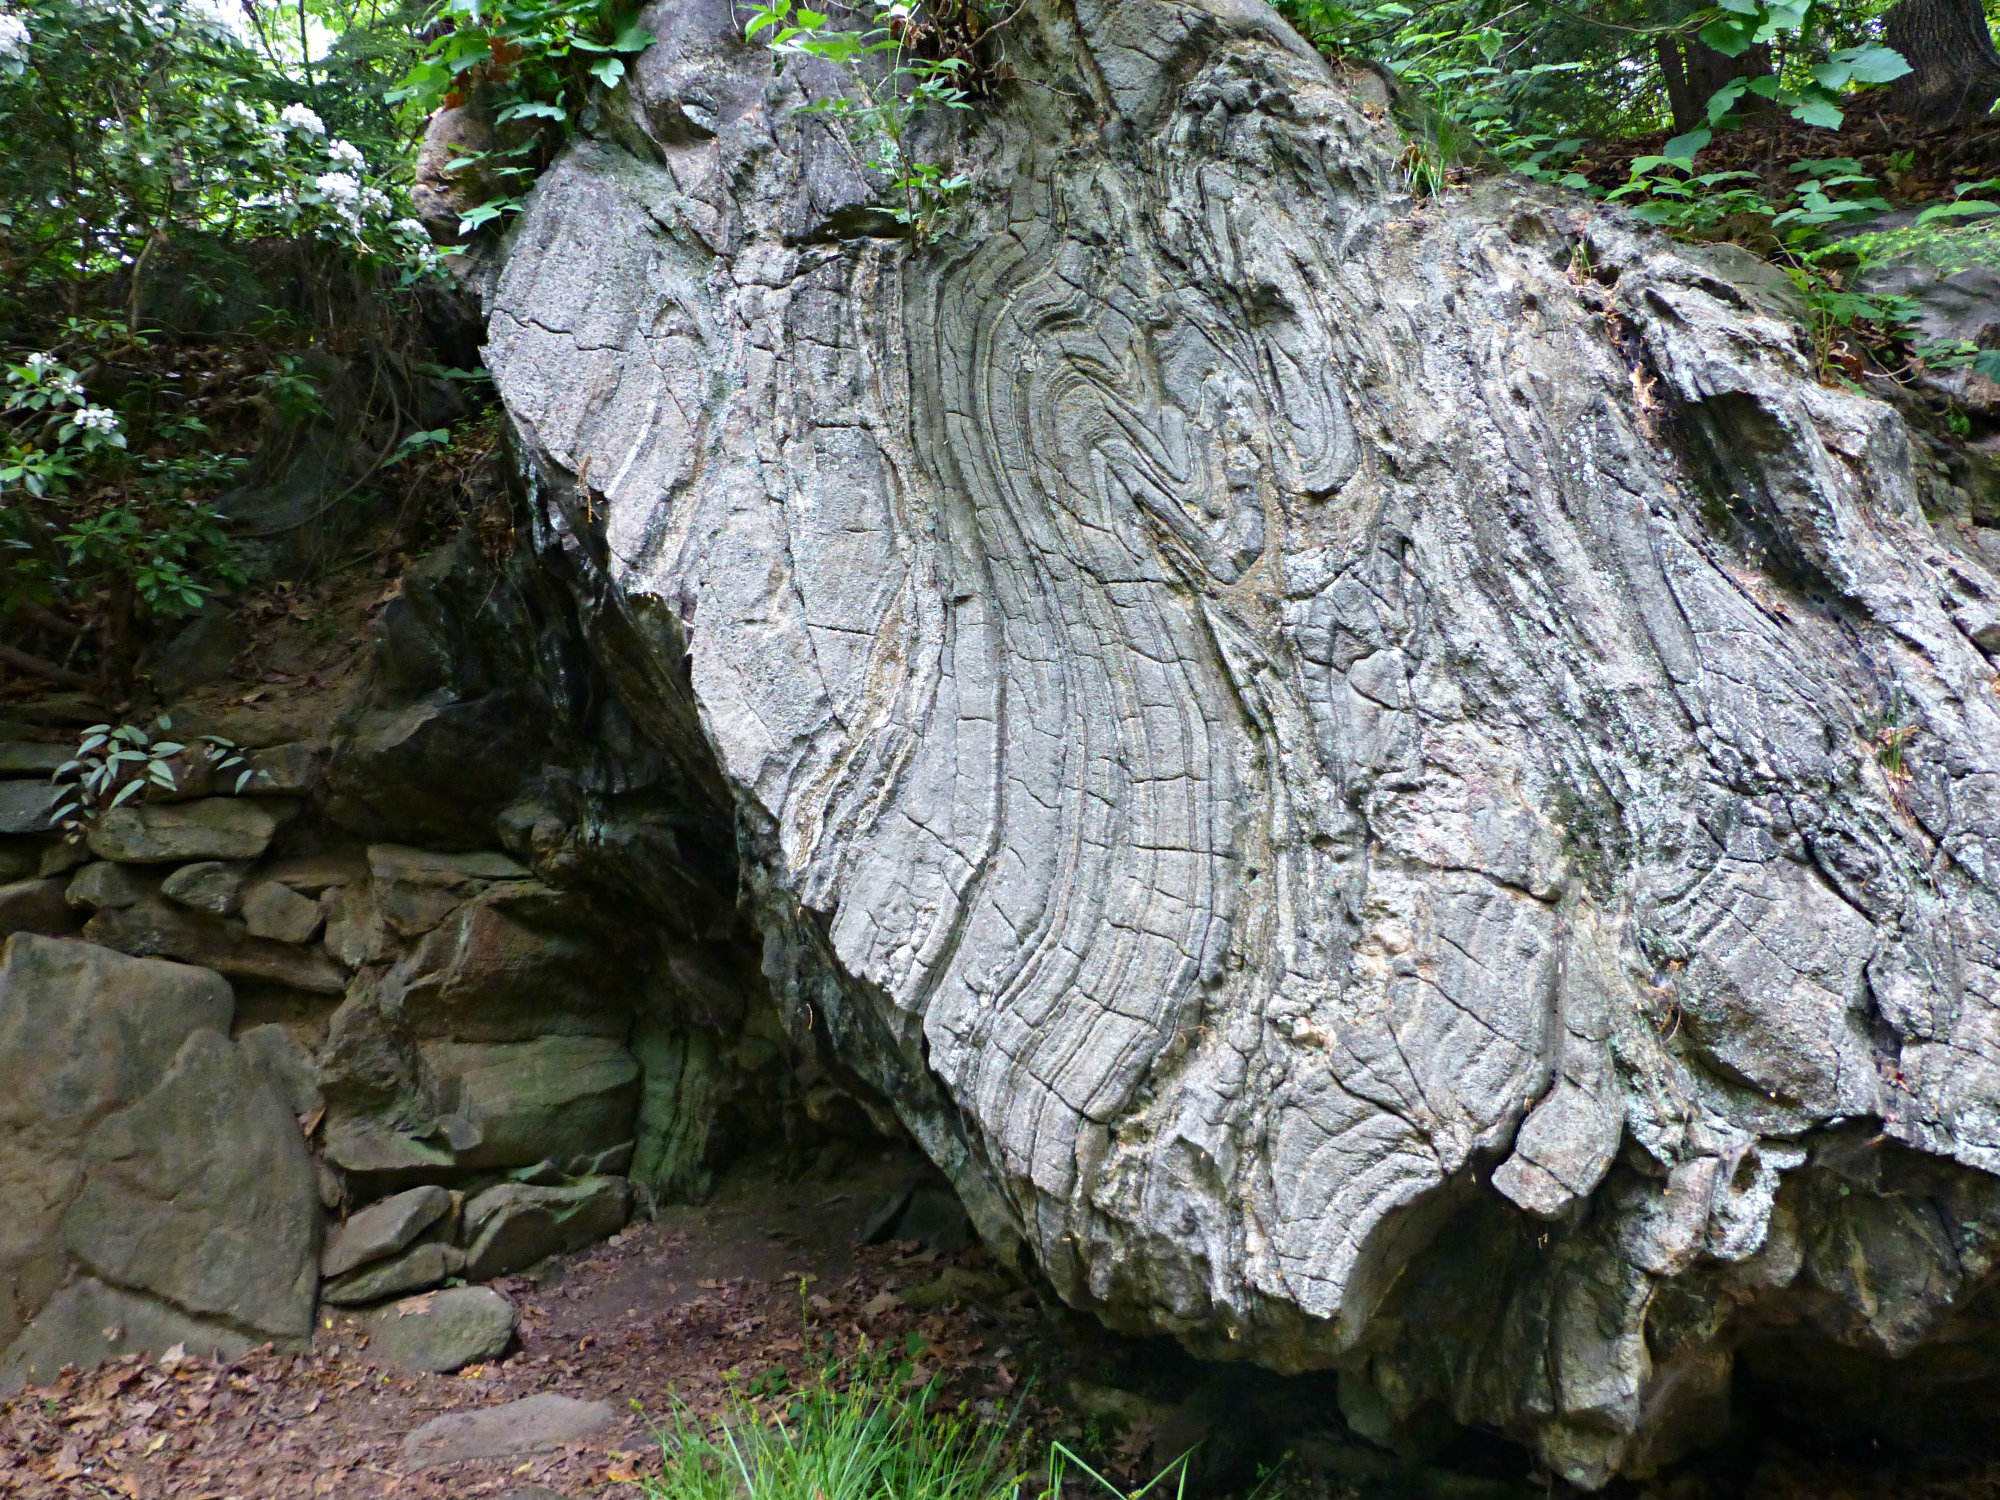 Large vertical rock formation with several grooves in the rock and other stones nearby